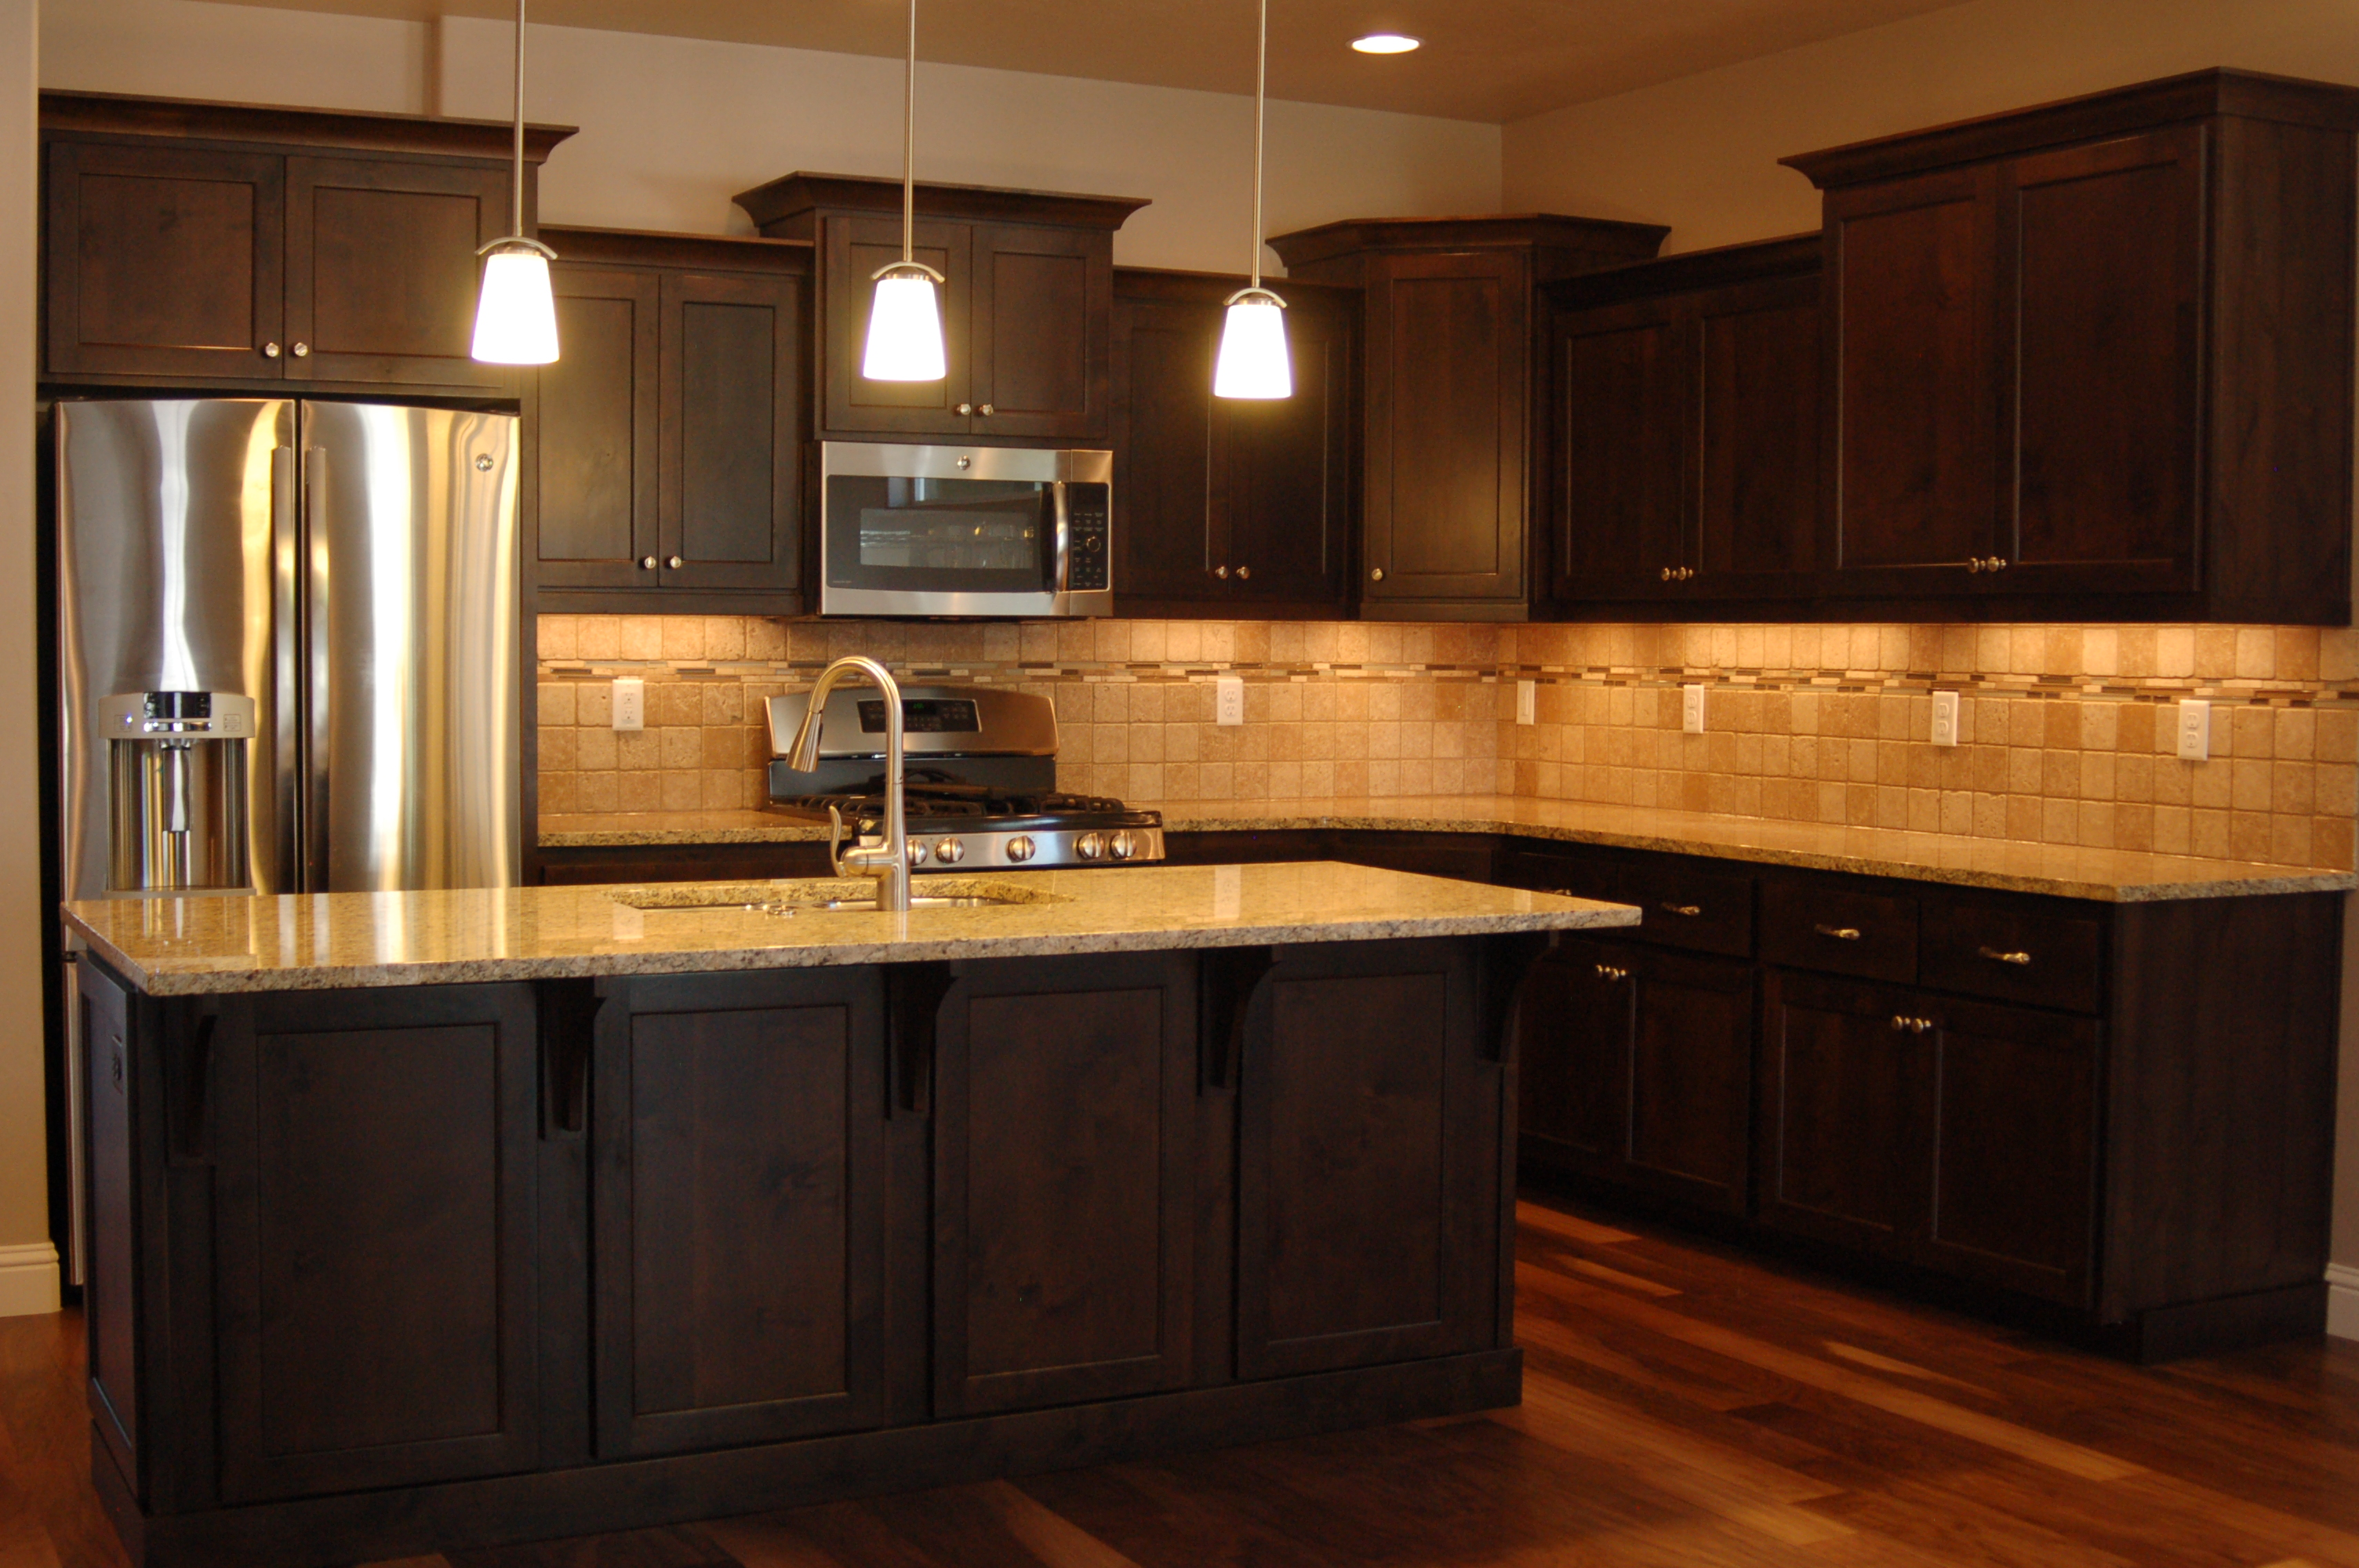 Kitchen cabinets boise - Kitchen Cabinets